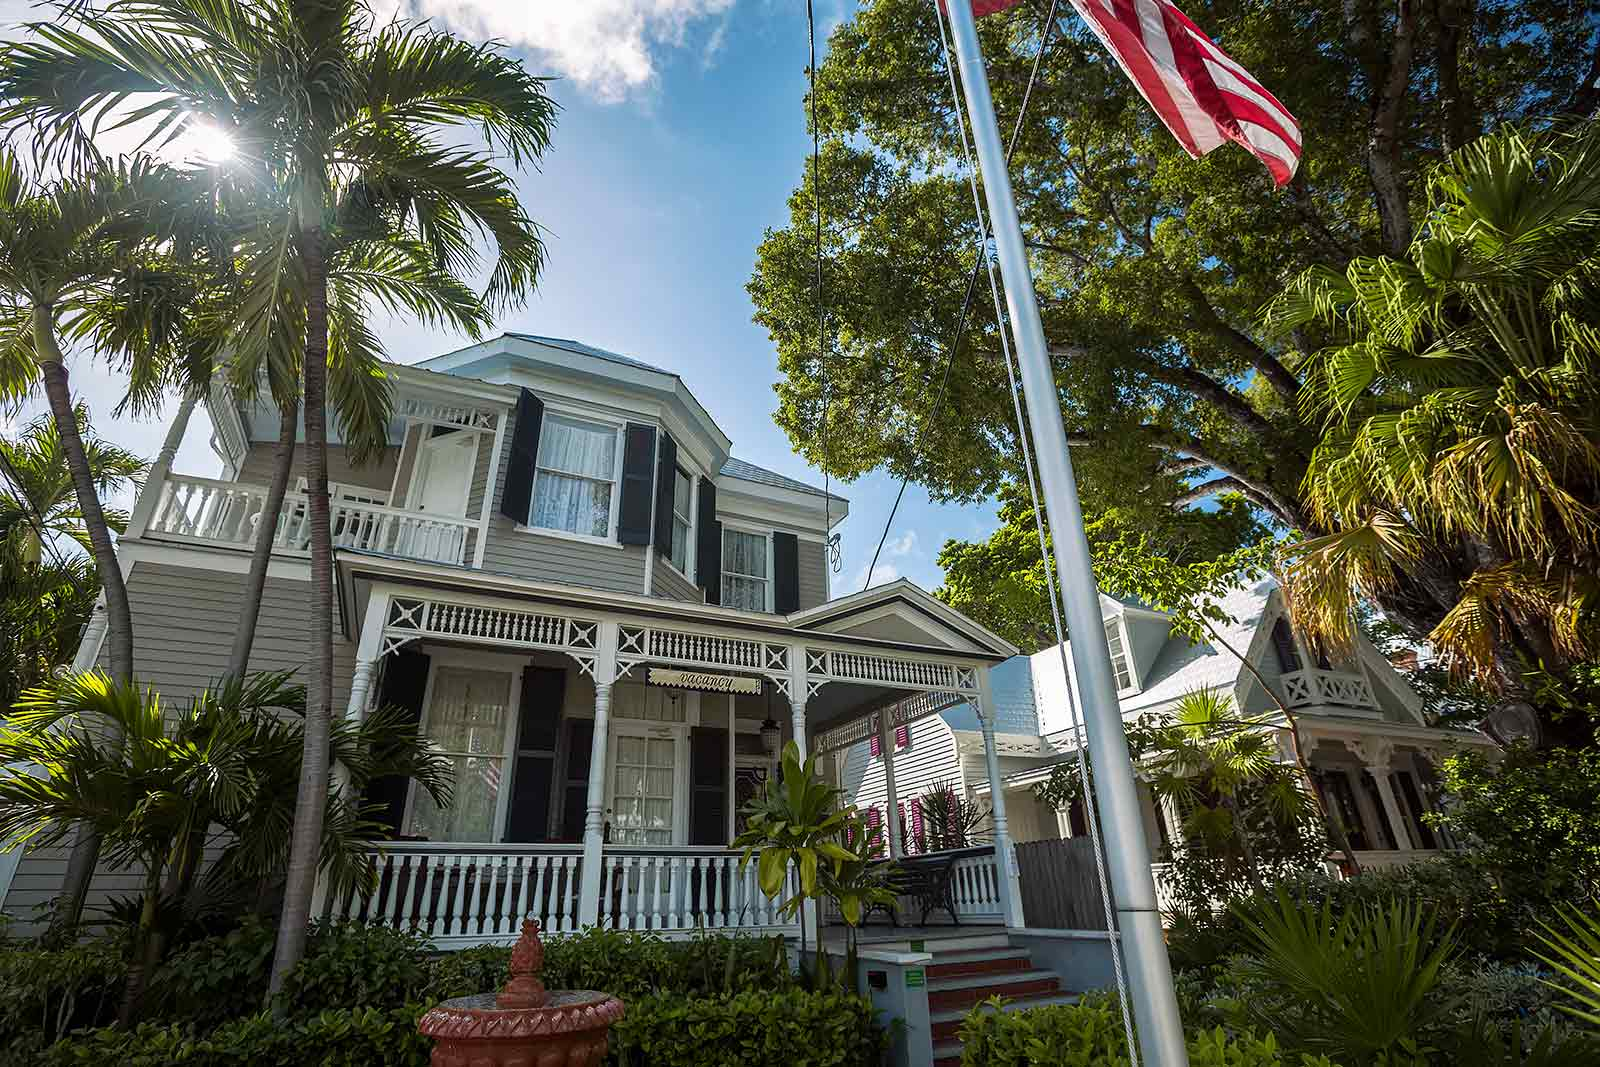 Each house in Key West looks different, but then again similar. It's well worth it to walk through the many streets of the city.